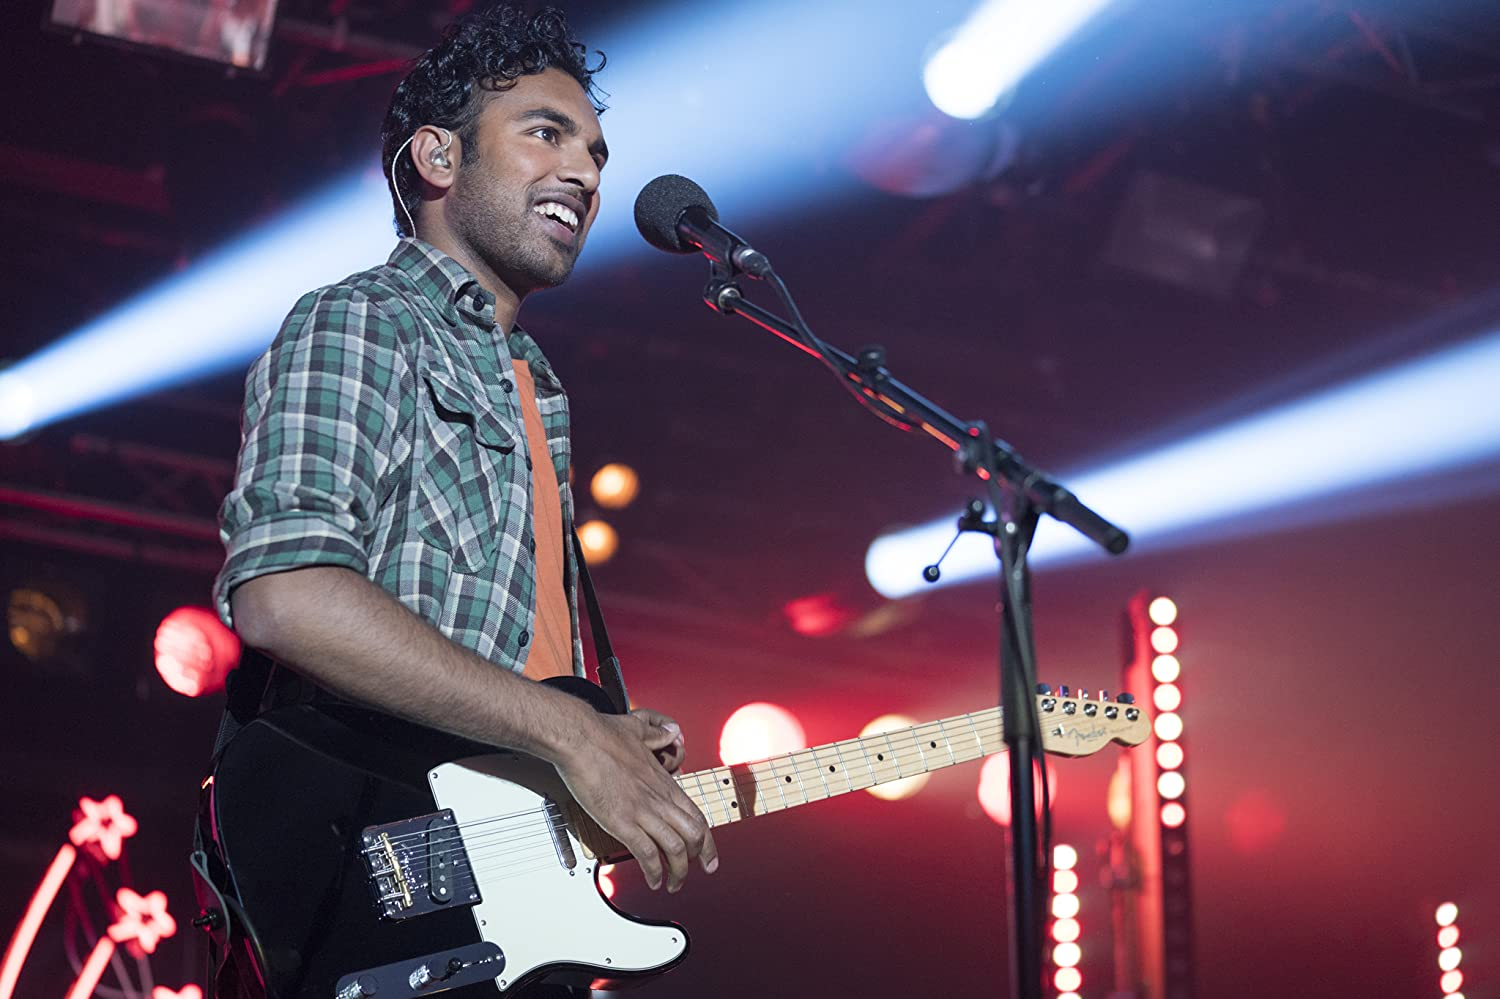 Himesh Patel in Yesterday (2019)